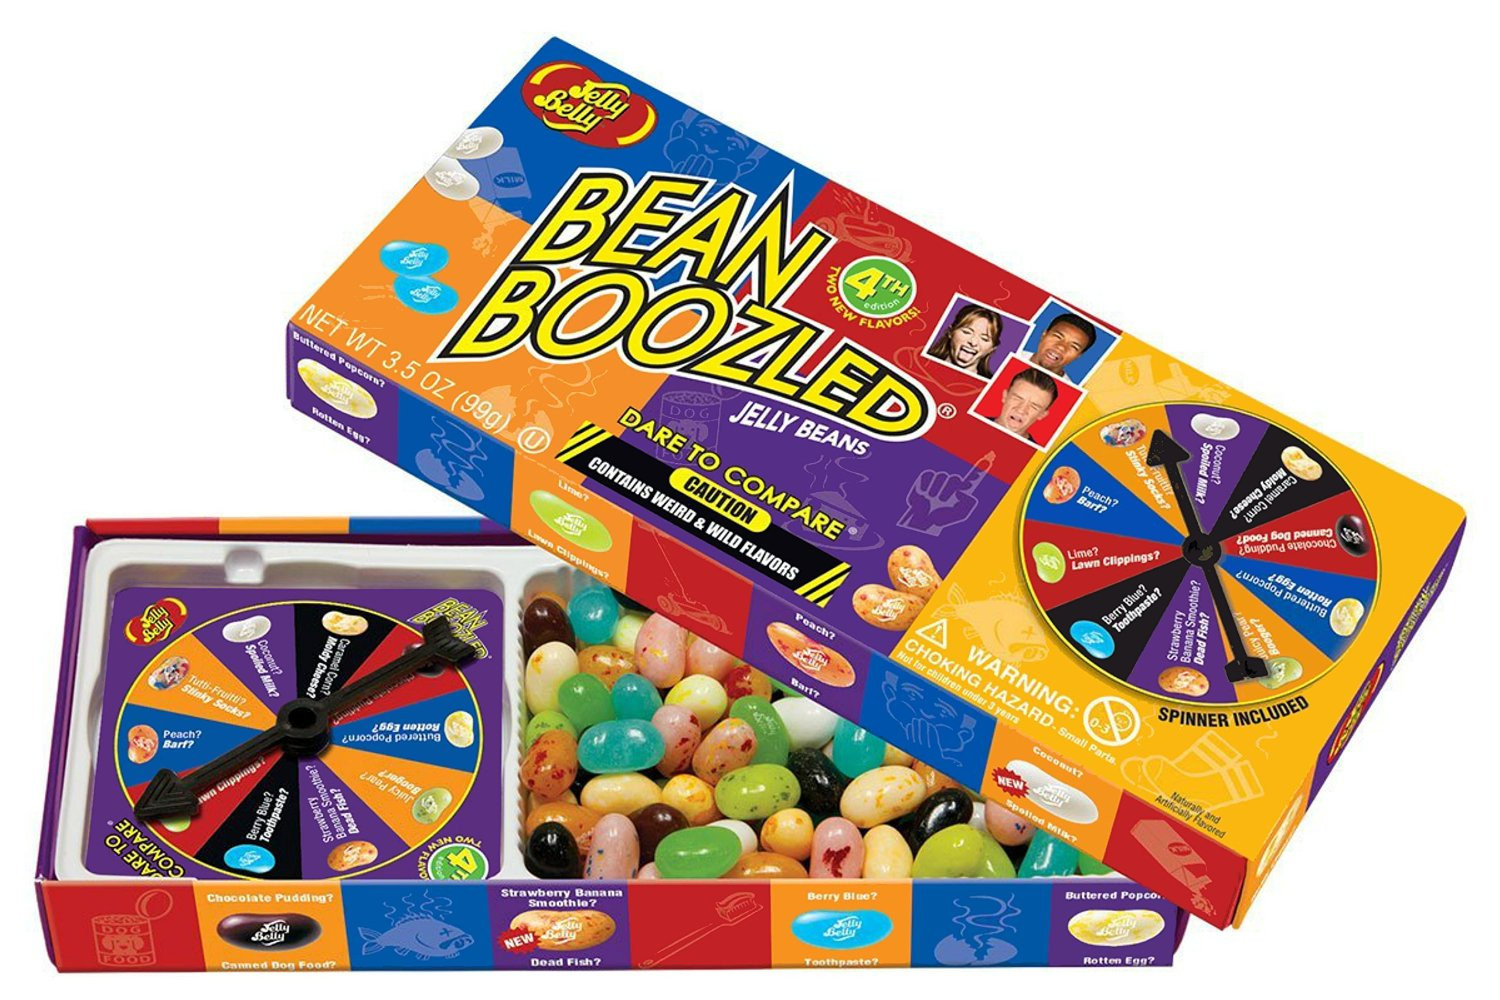 Jelly Belly BeanBoozled Spinner Box, 3.5 oz, 3 Count by Jelly Belly Candy Company